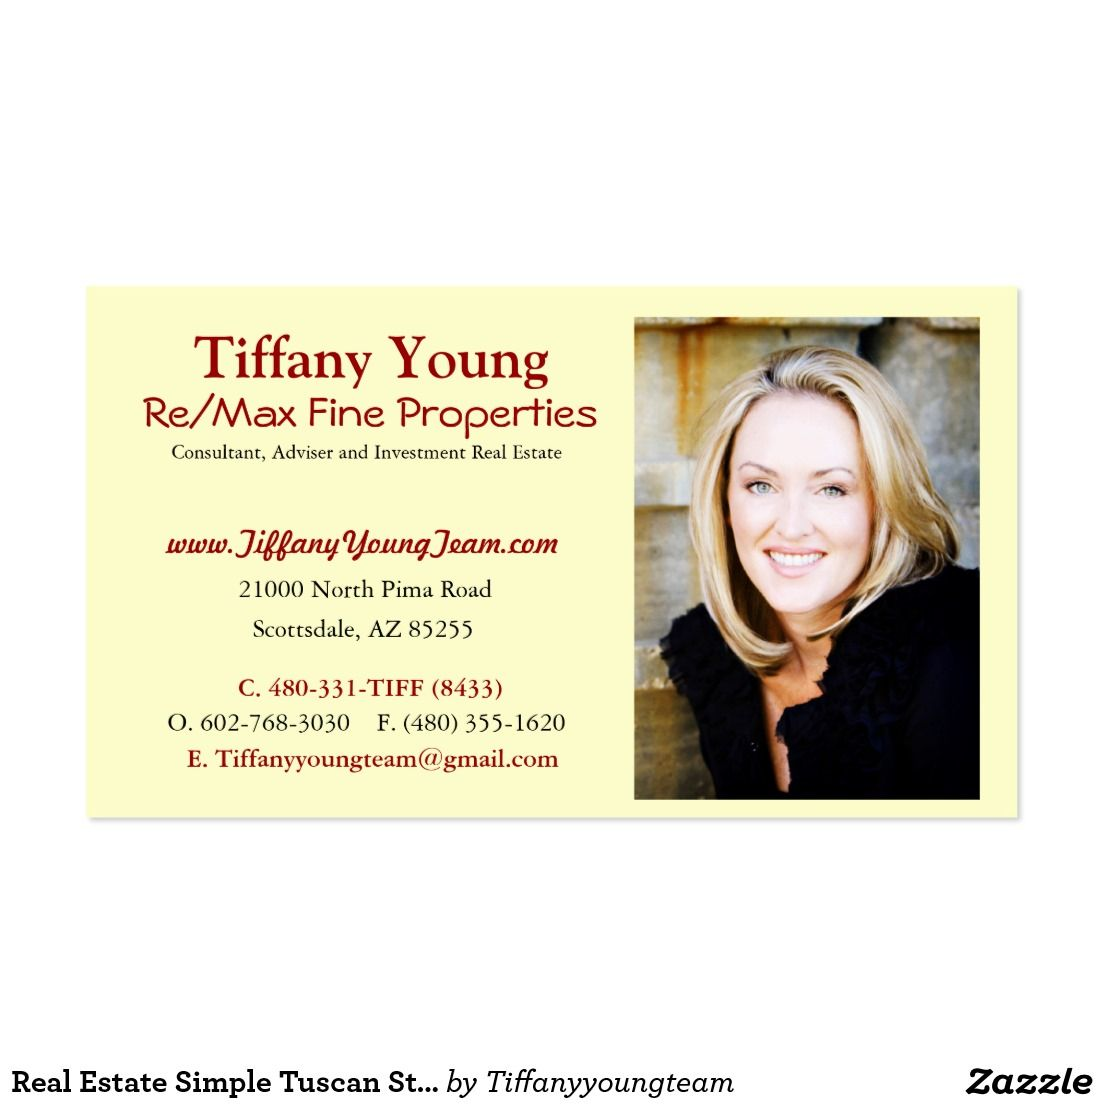 Real estate quotes for business cards image collections free real estate simple tuscan style photo w quote business card real estate simple tuscan style photo magicingreecefo Choice Image